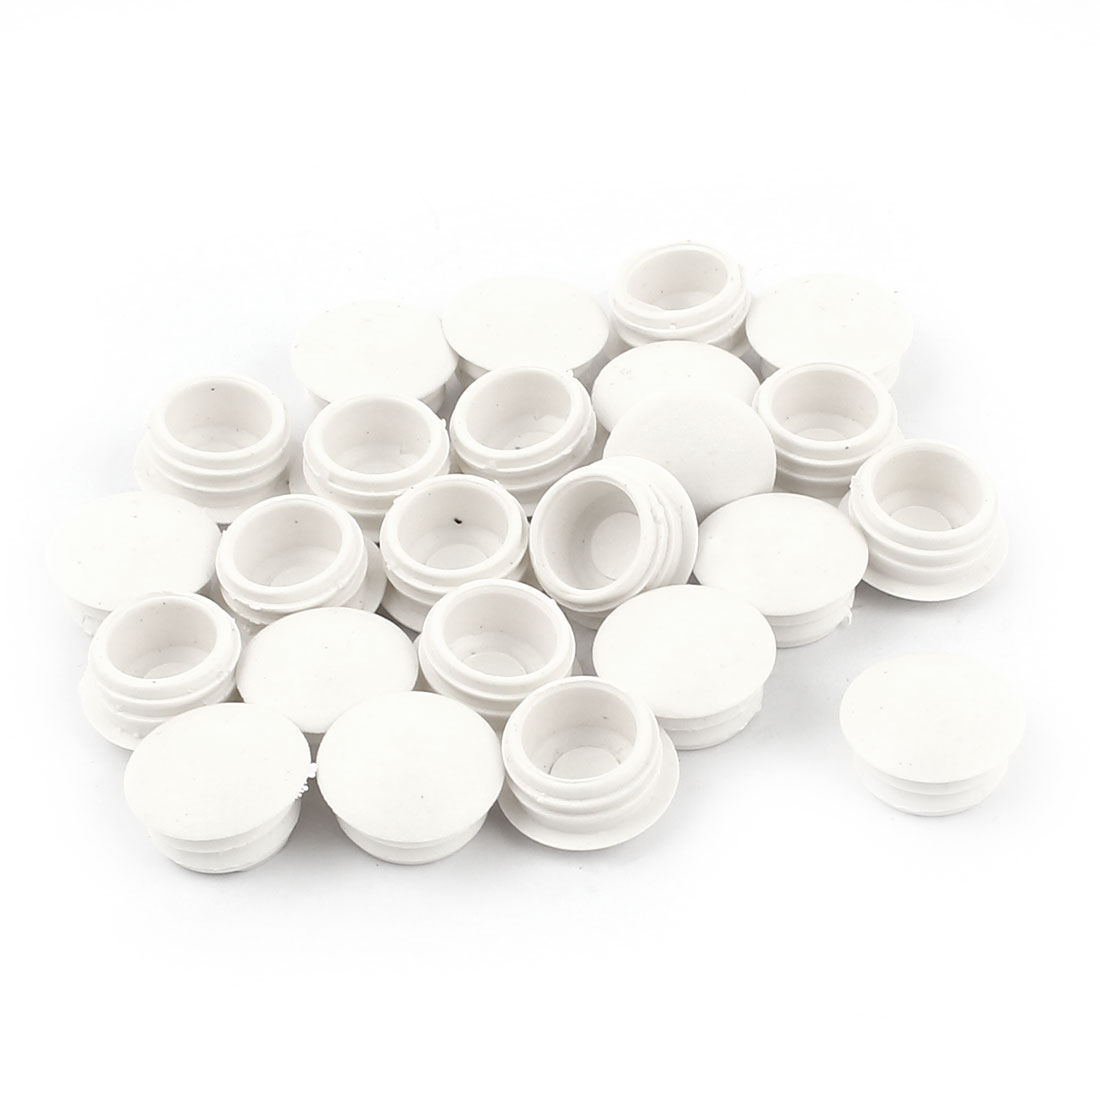 "24 Pcs 1/2"" Dia Round Plastic Blanking End Caps Tubing Tube Inserts"